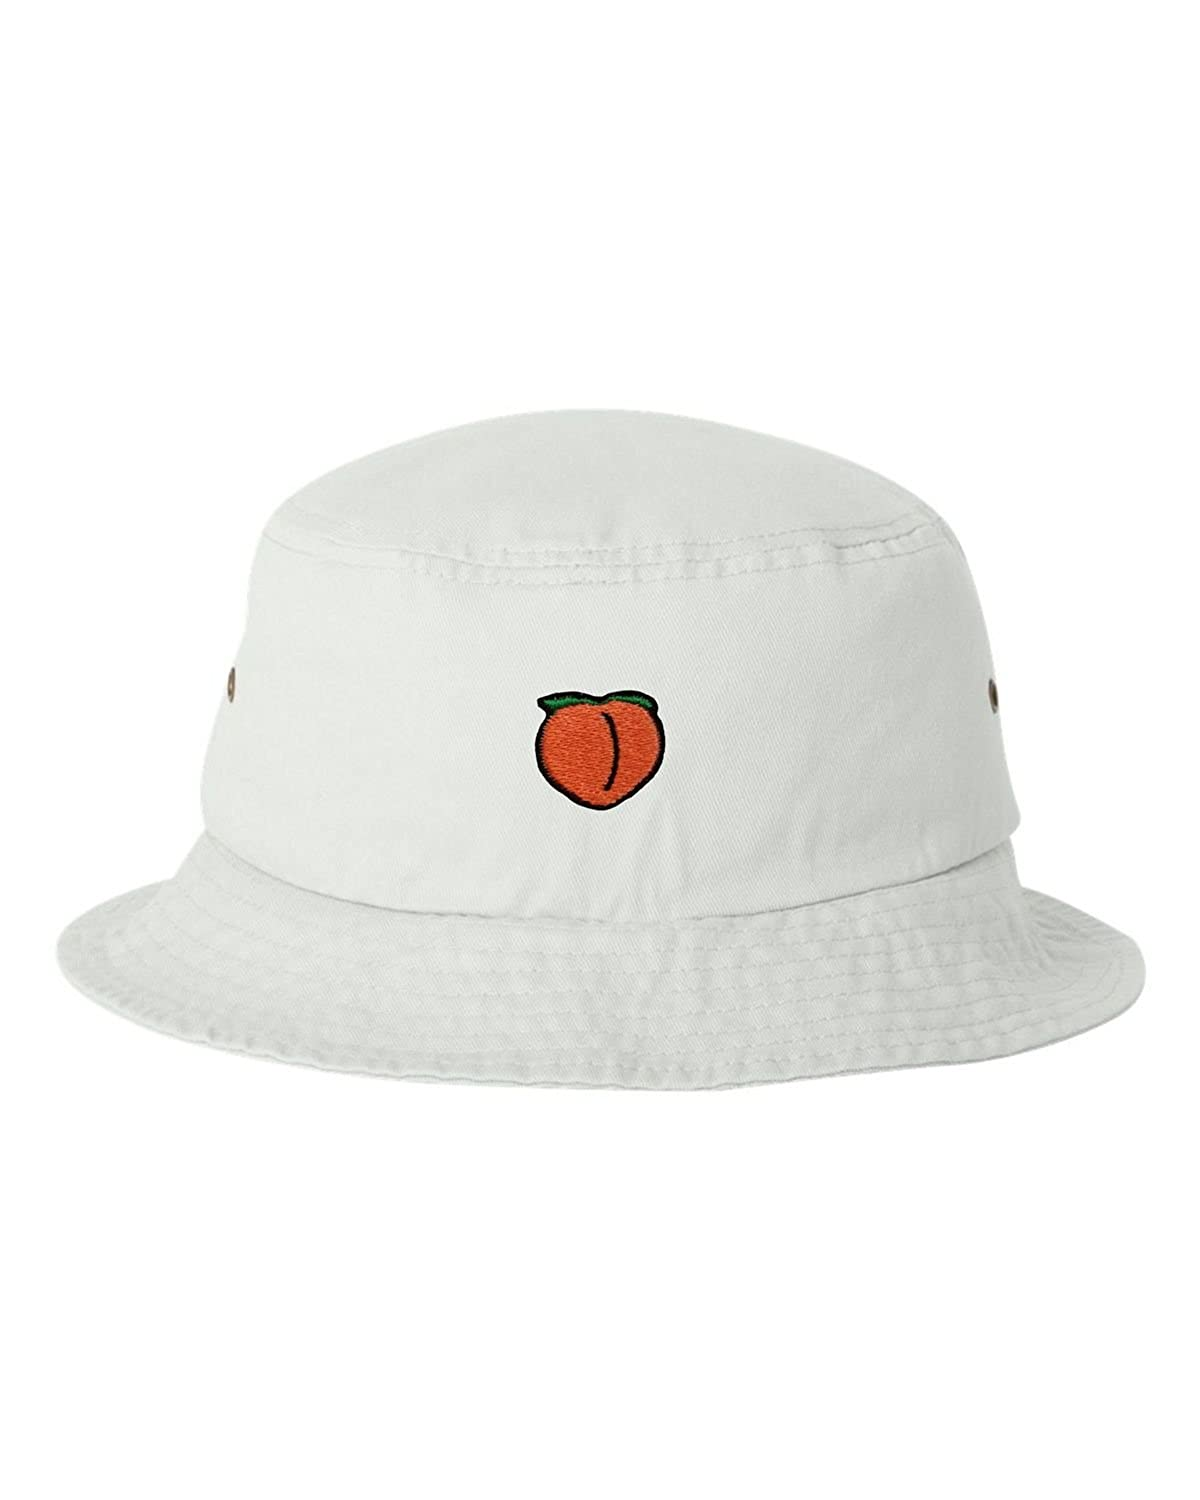 Go All Out Adult Peach Embroidered Bucket Cap Dad Hat